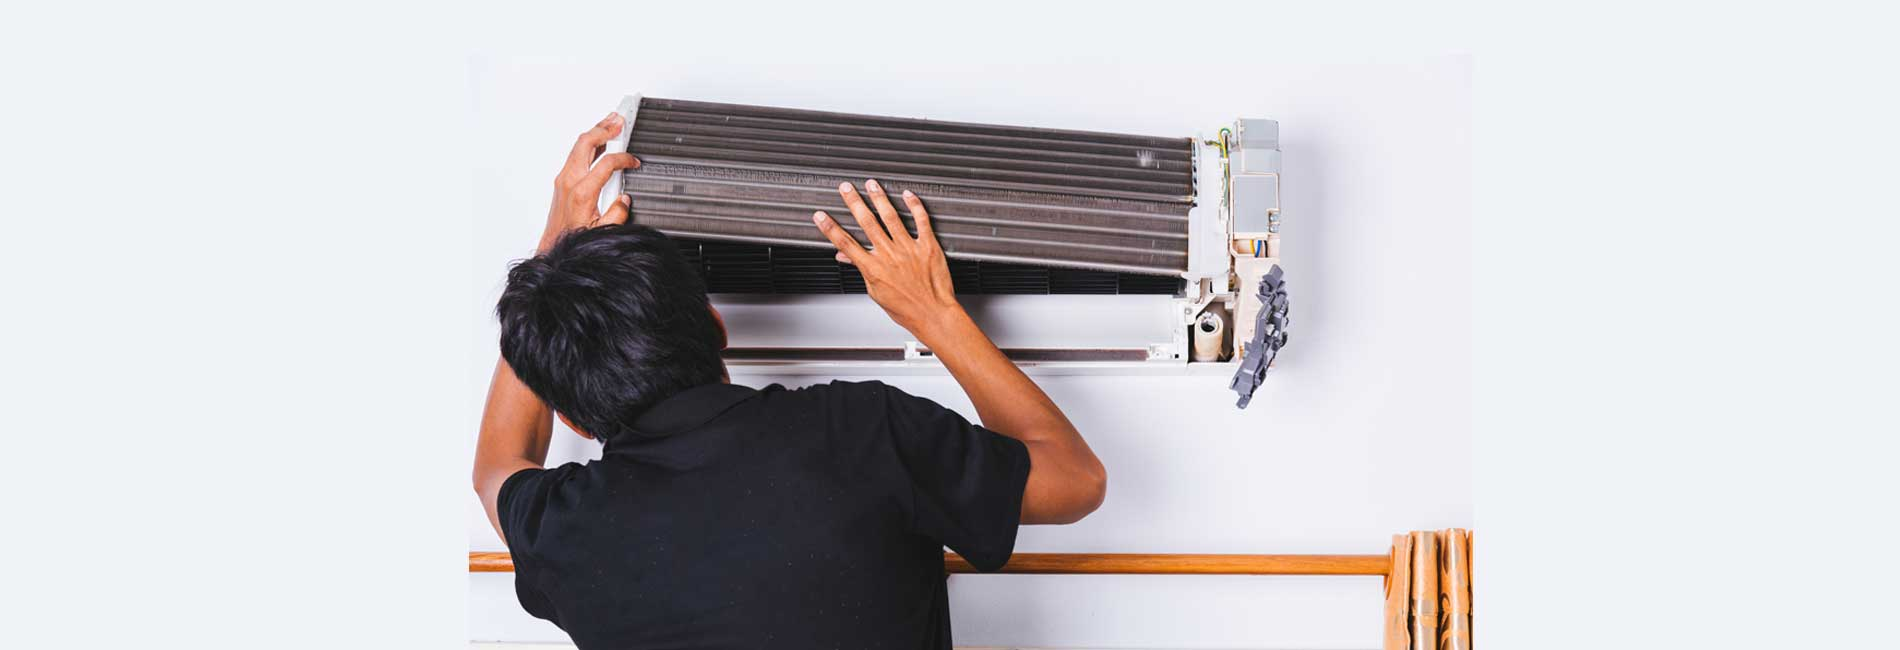 AC Uninstallation Charges in Kanathur